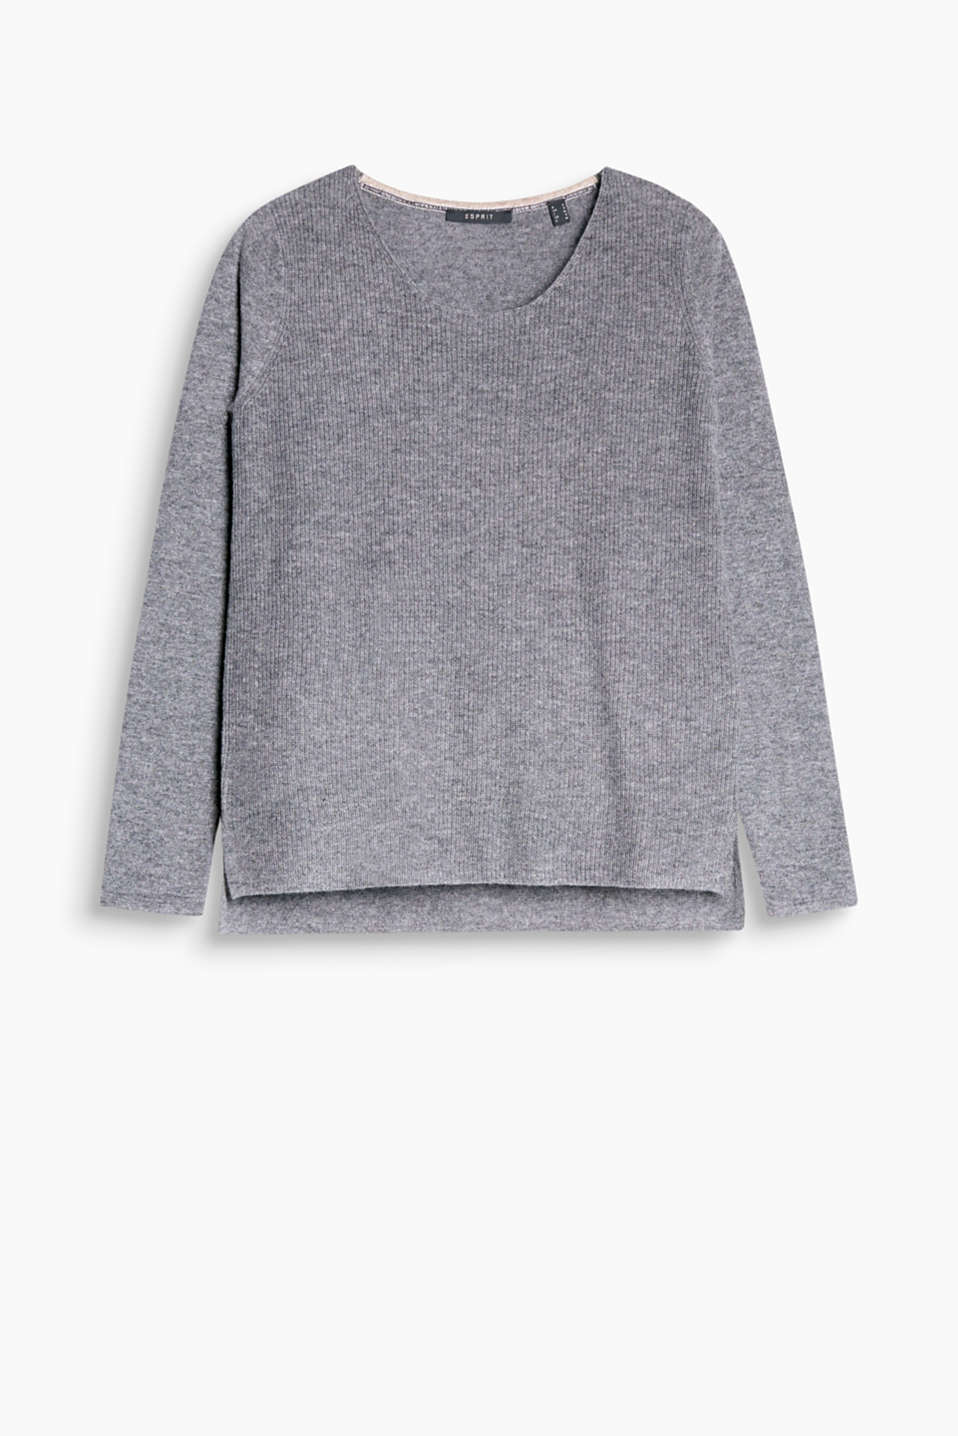 Casual jumper in elegant blended cashmere with a finely ribbed front section and a high-low hem